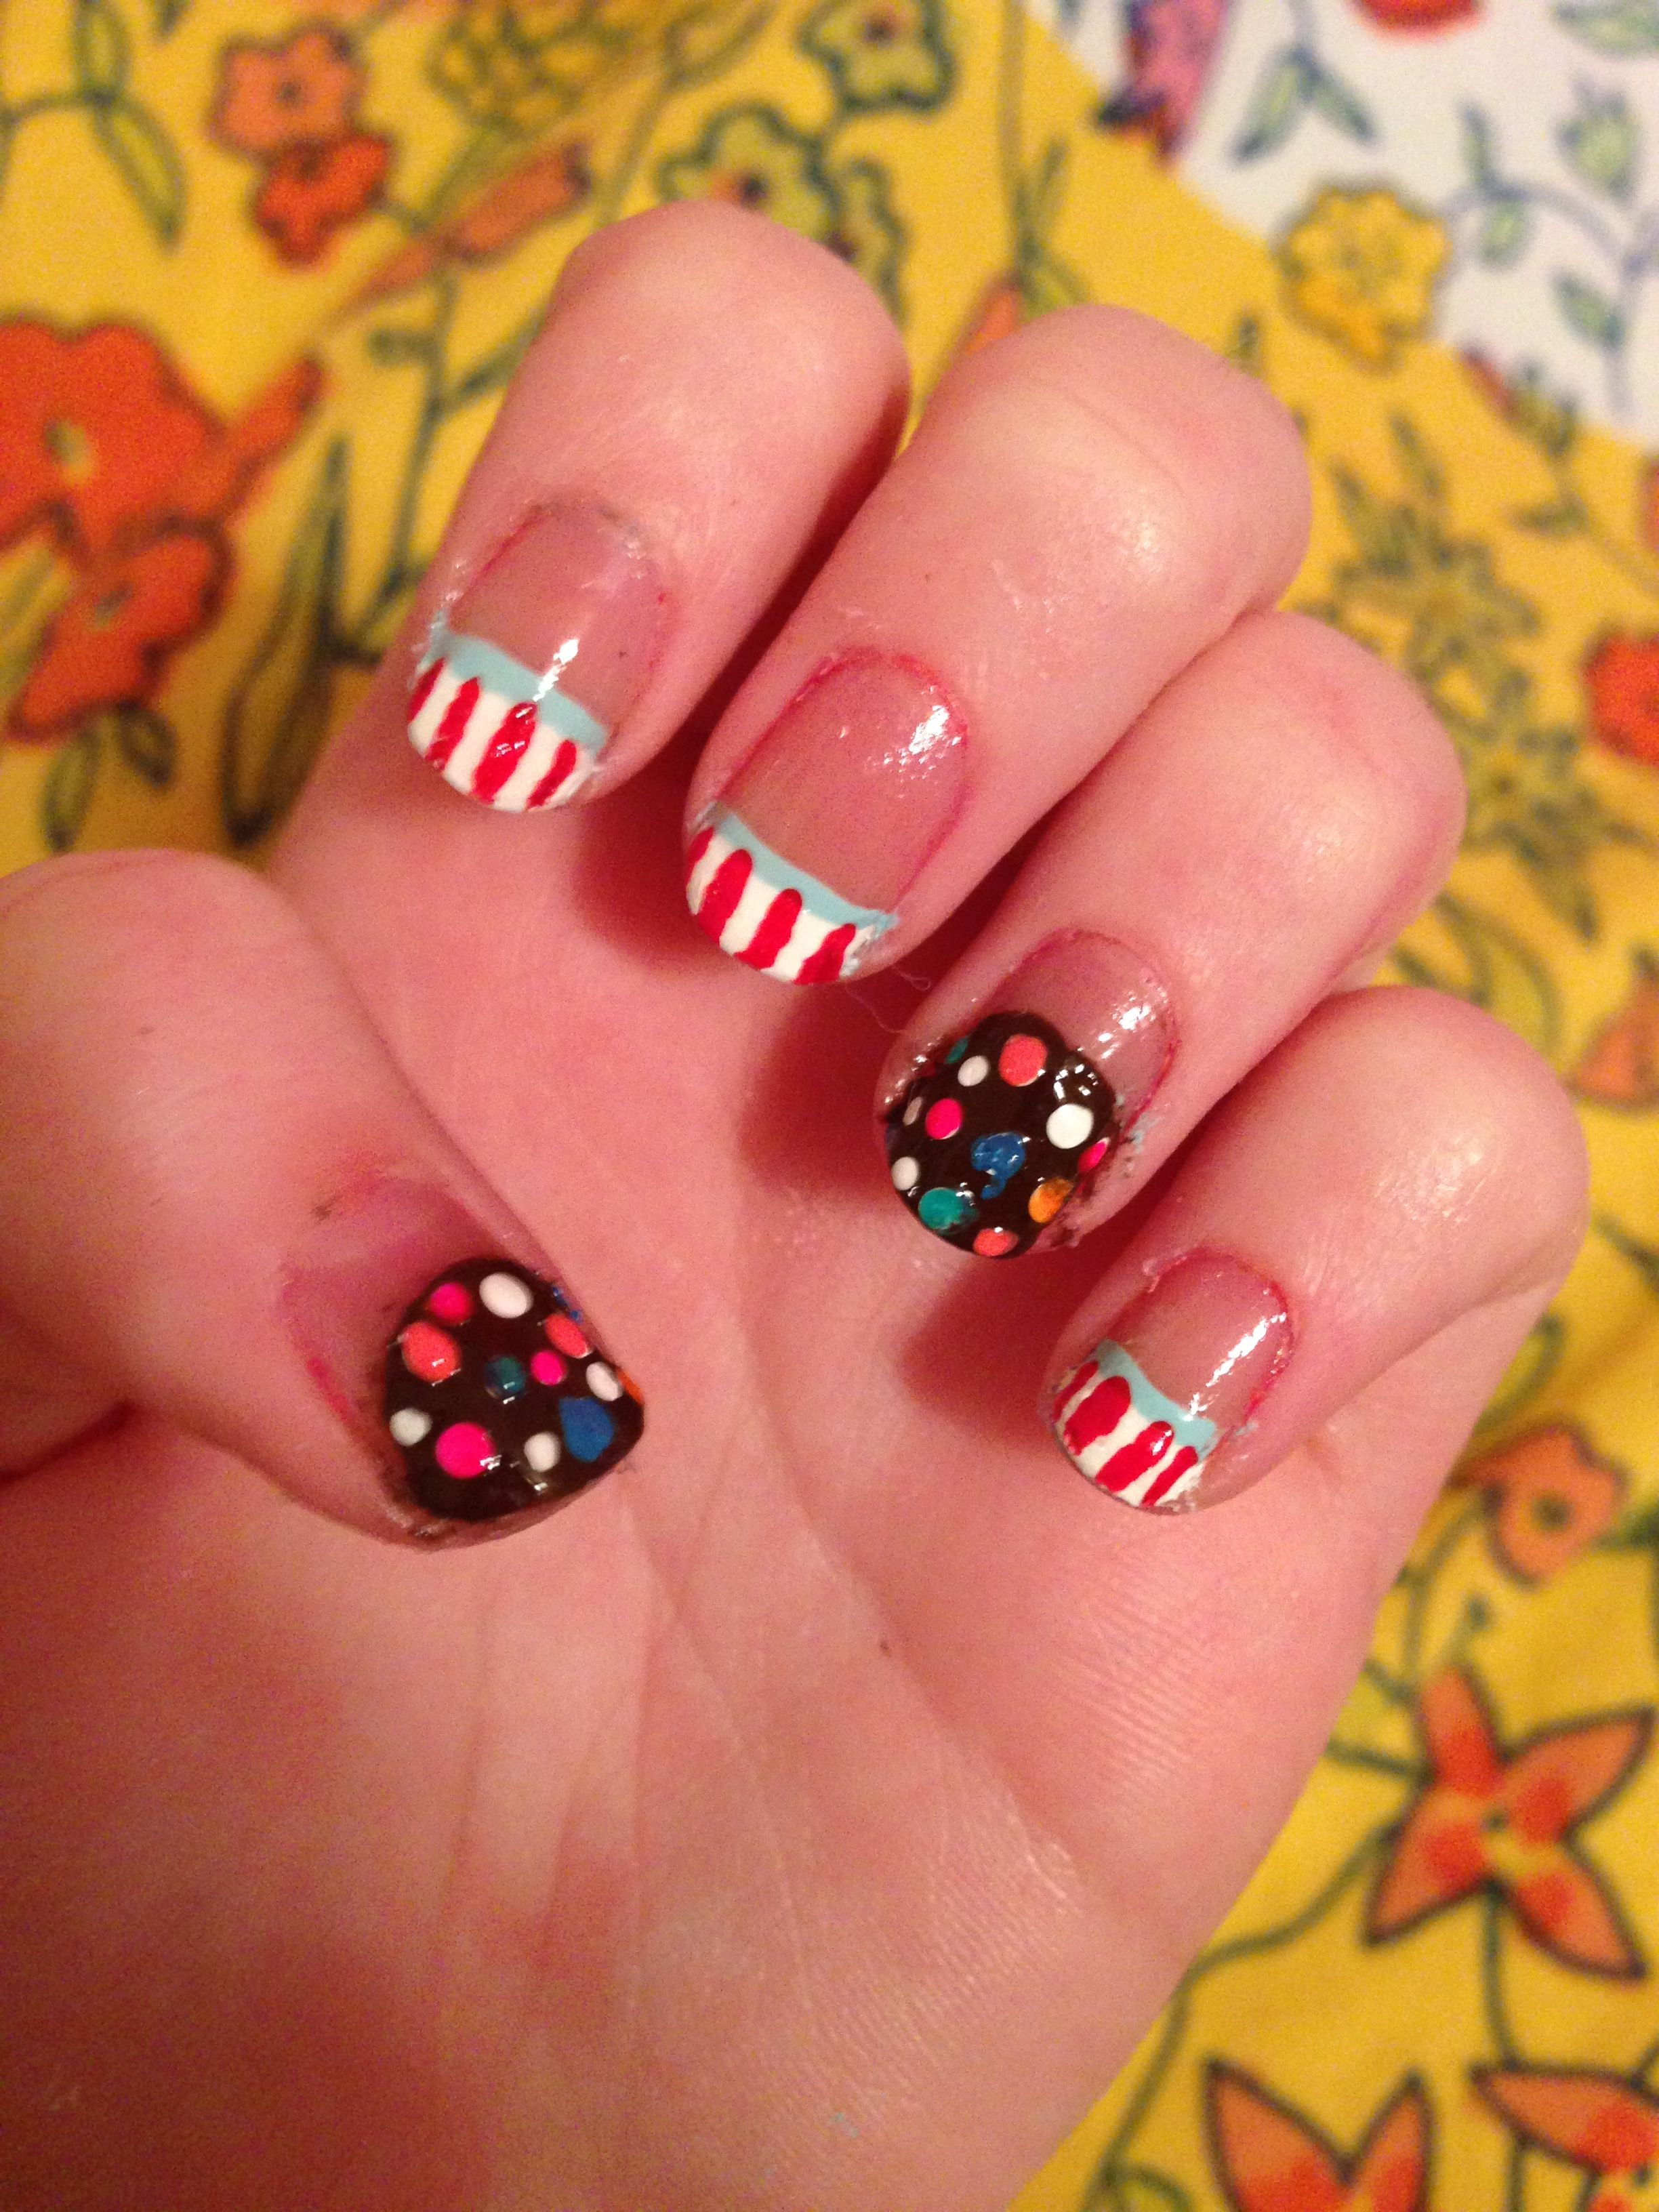 Candy crush inspired nail art. :) That game is so addictive! | Nails ...